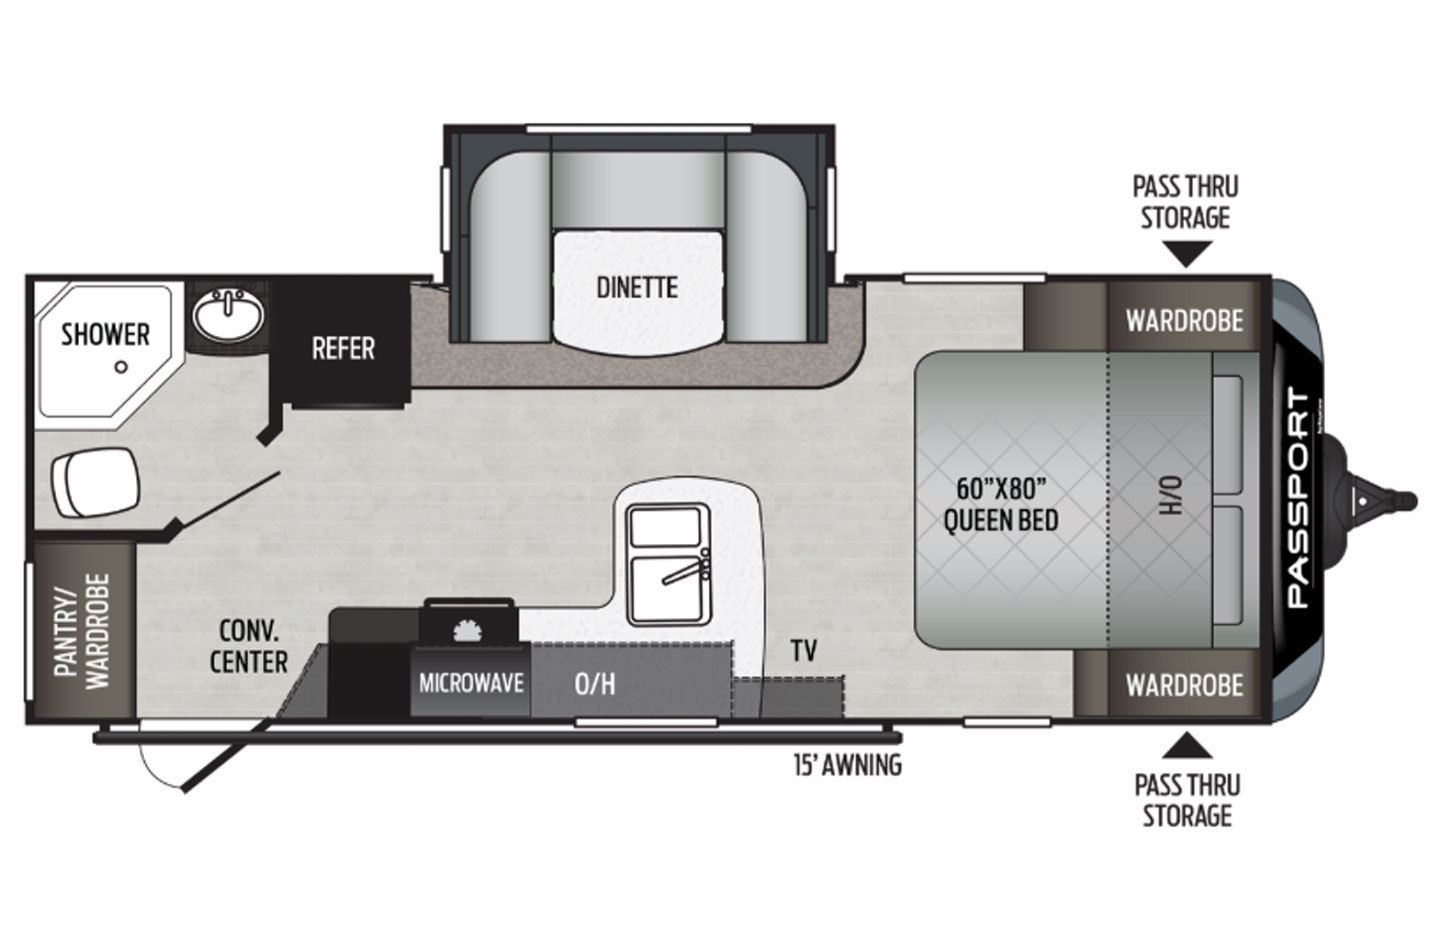 2021 Grand Design Imagine 17MKE Floorplan